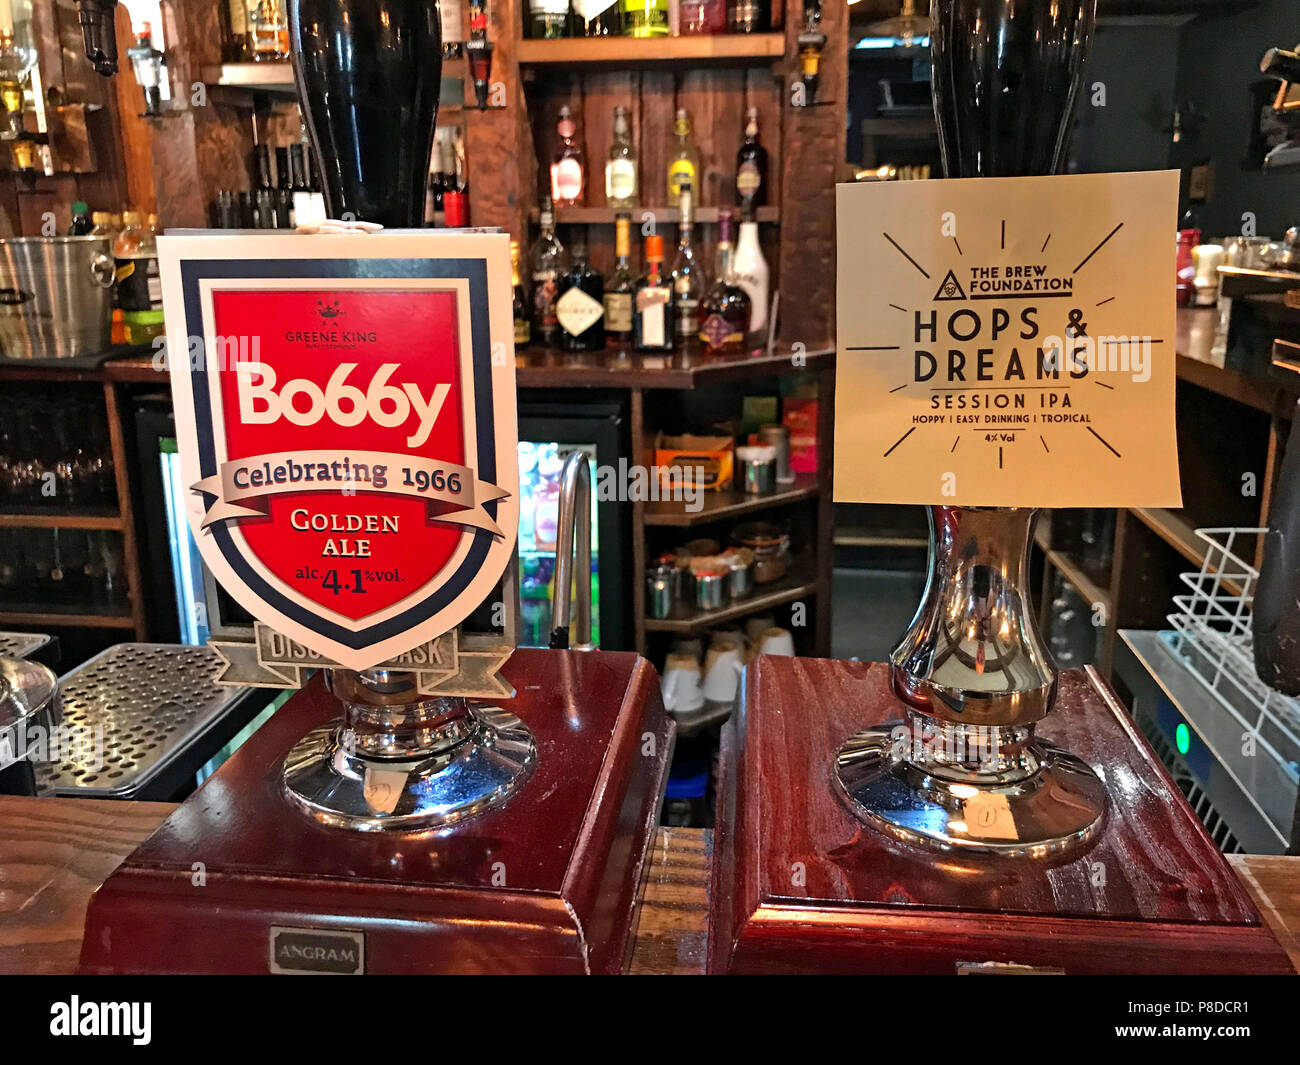 Bobby 1966 Golden Ale and Hops & dreams Session IPA on a bar at Mayflower Bar, Austerfield, Doncaster, South Yorkshire, England, UK Stock Photo